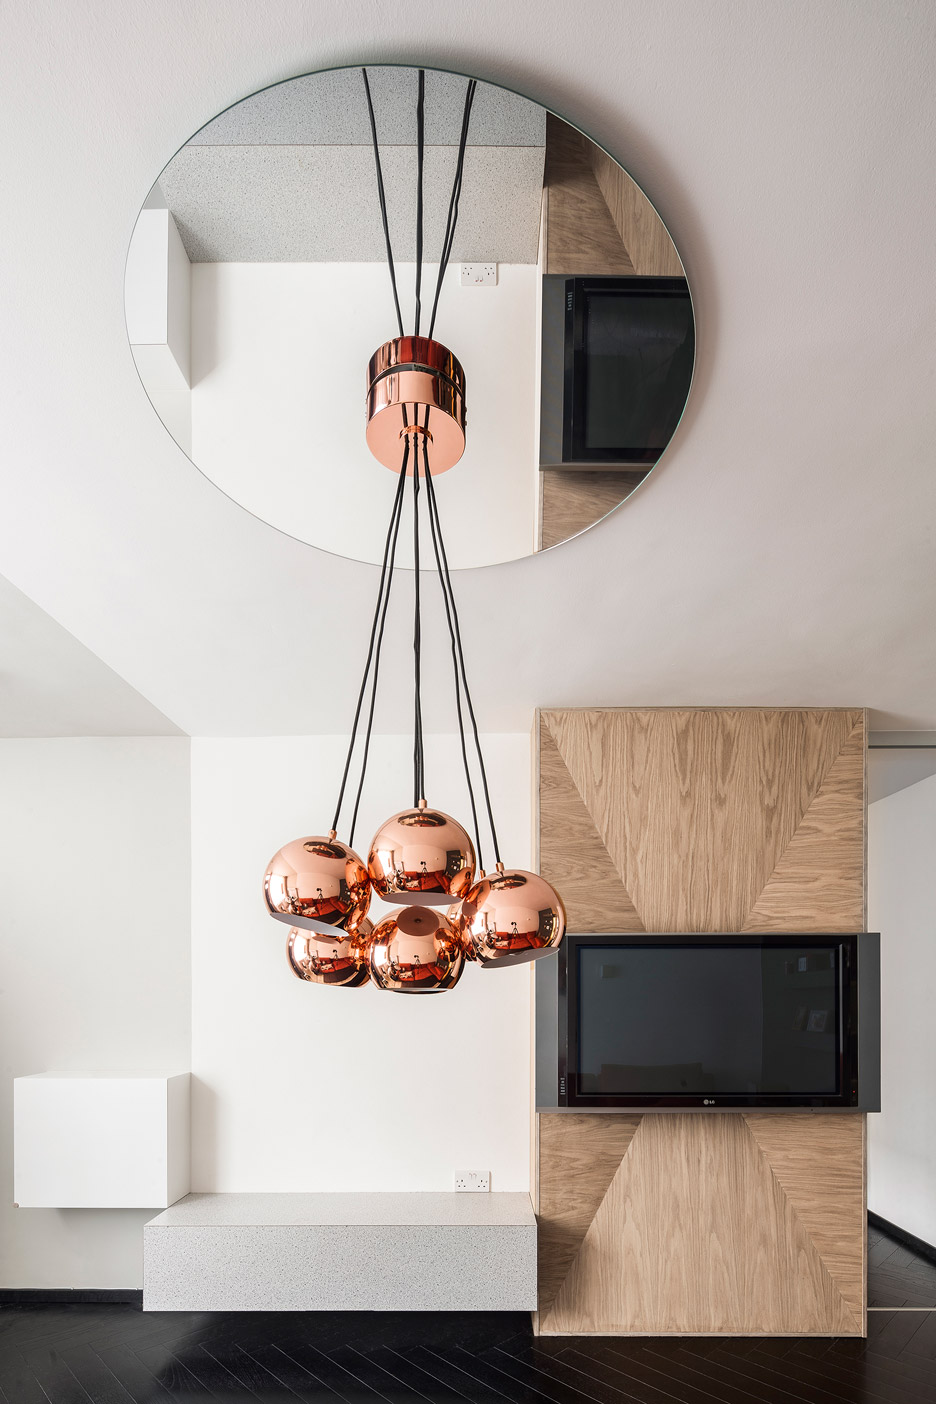 apartment-filippo-studio-alexander-fehre-london_dezeen_936_5